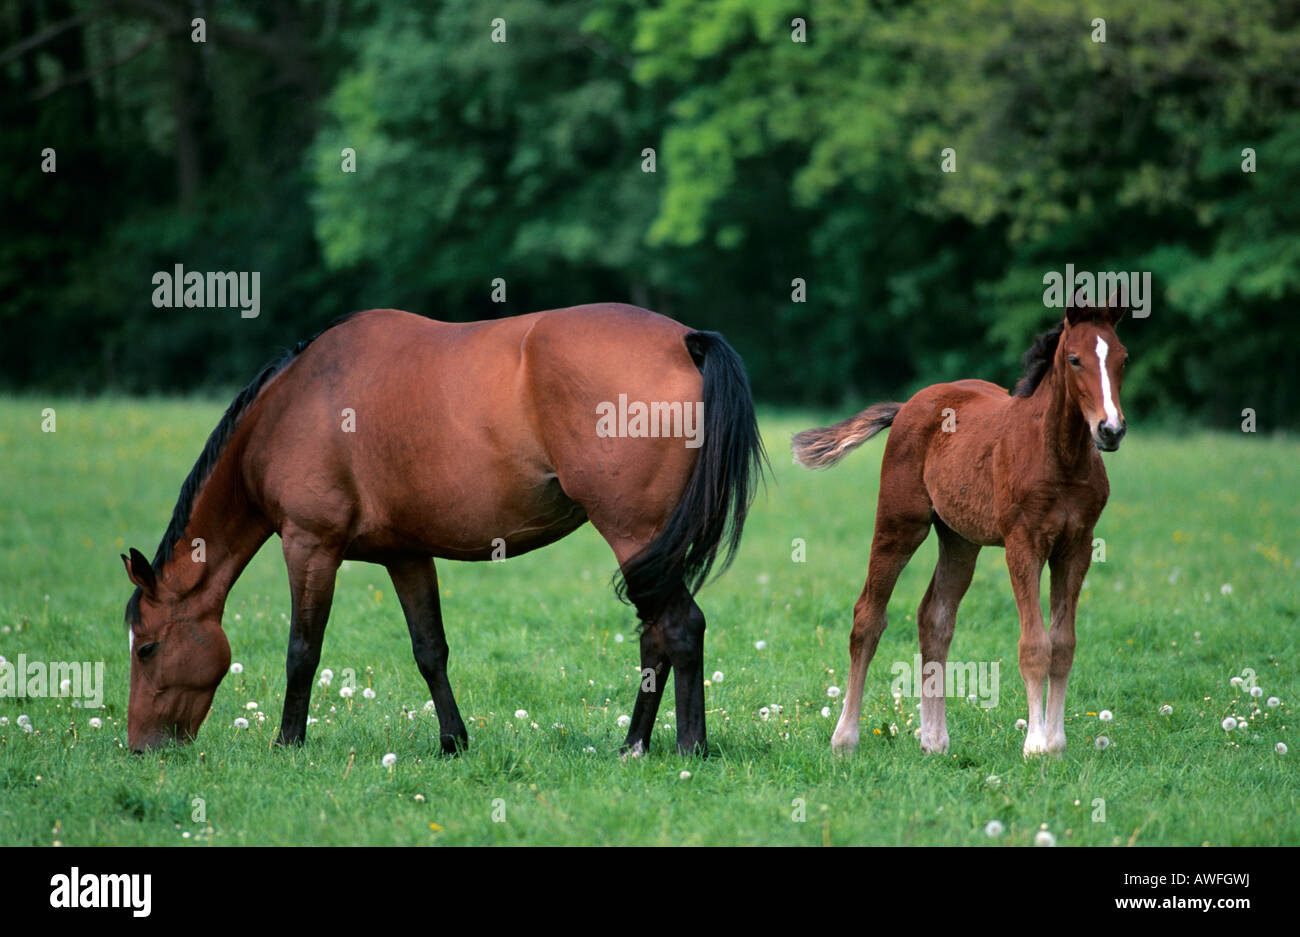 Brown mare with foal, Lower Saxony, Germany, Europe Stock Photo